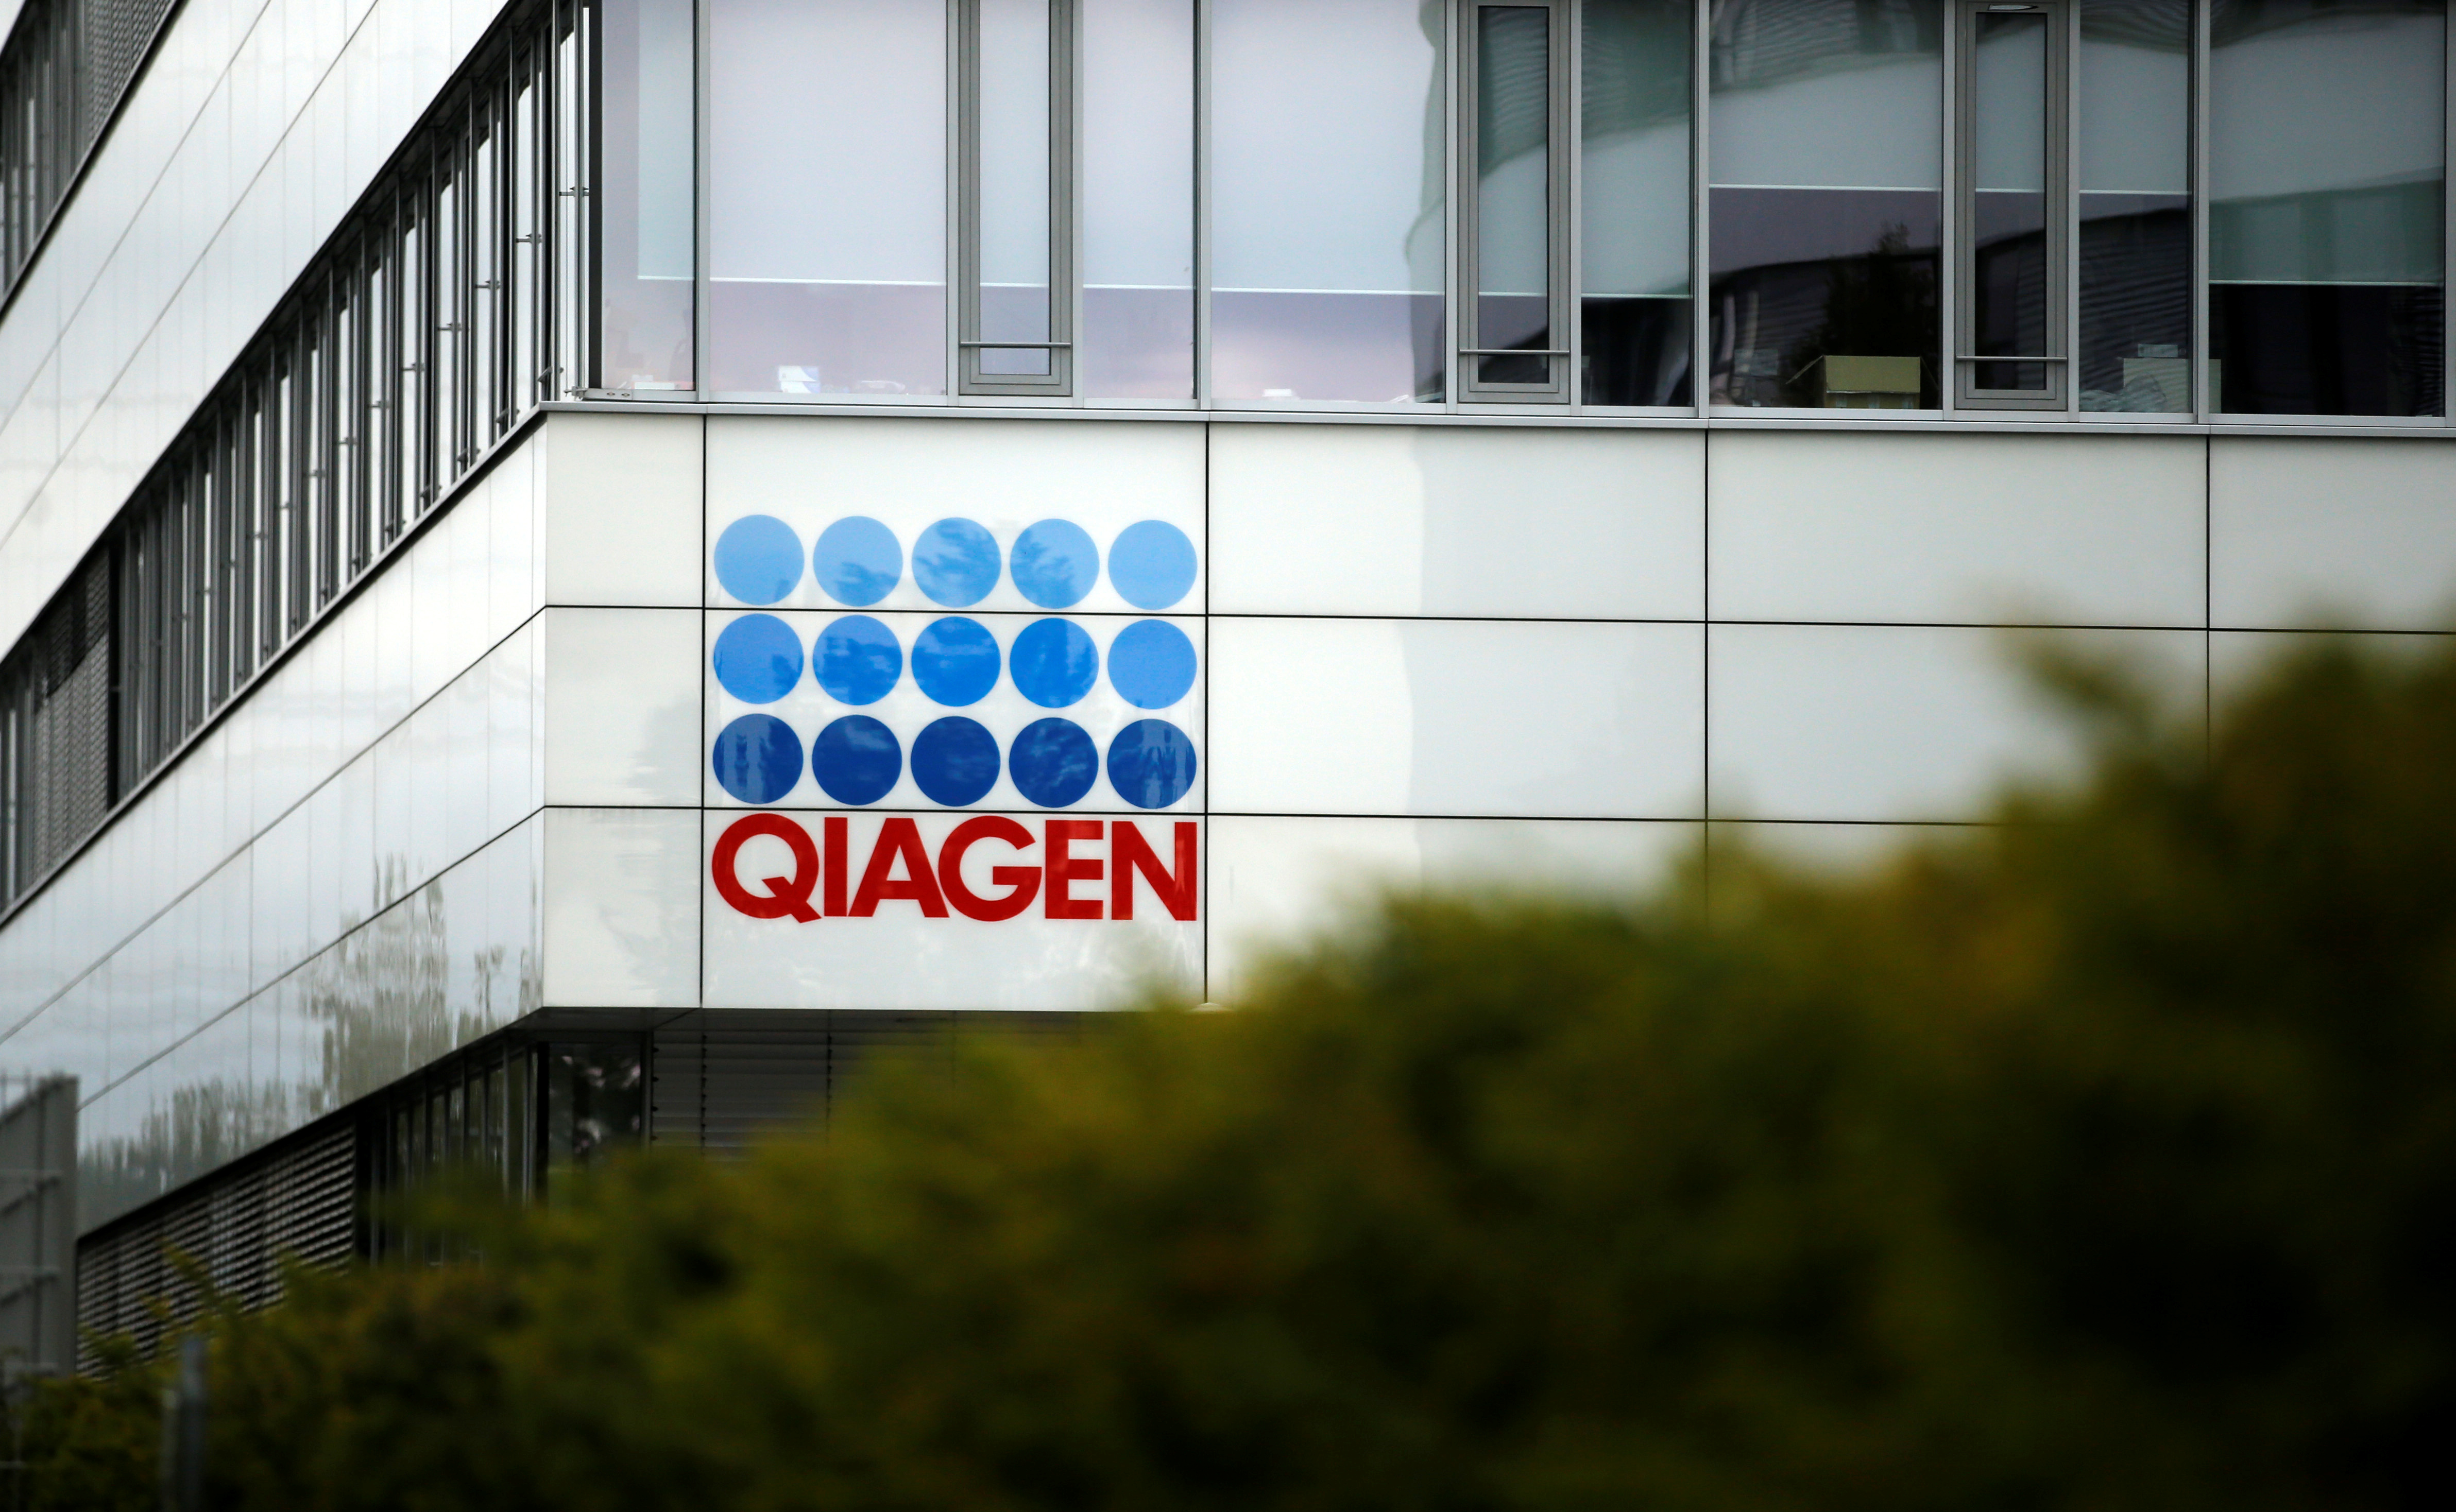 A logo of a testing company Qiagen is seen at Qiagen's facility, in Hilden, Germany, September 8, 2020. REUTERS/Leon Kuegeler